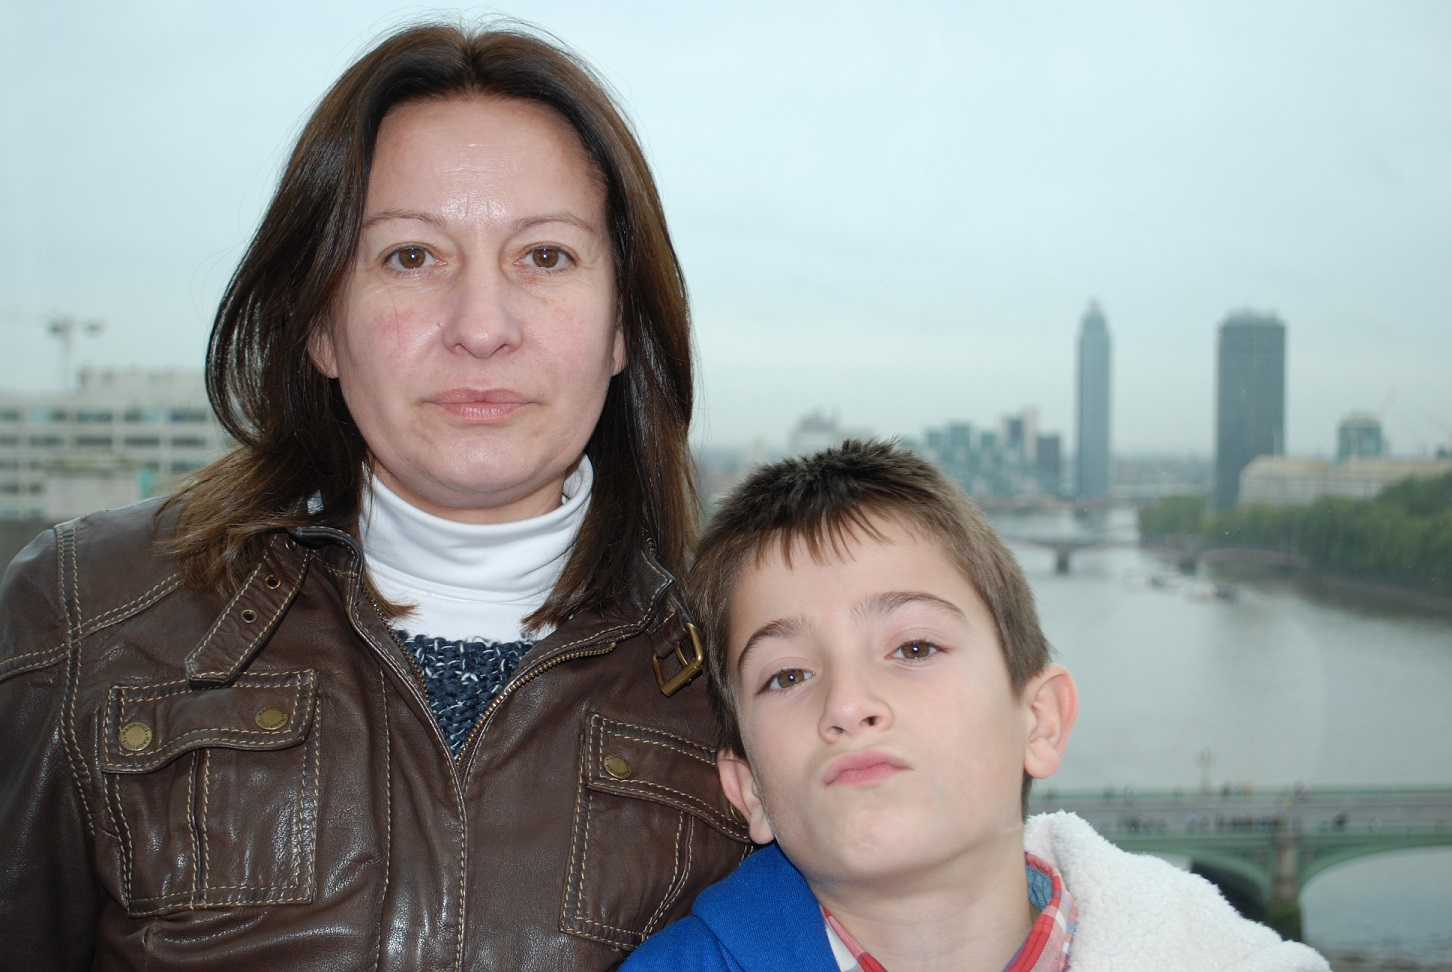 Ander with Mum, September 2013